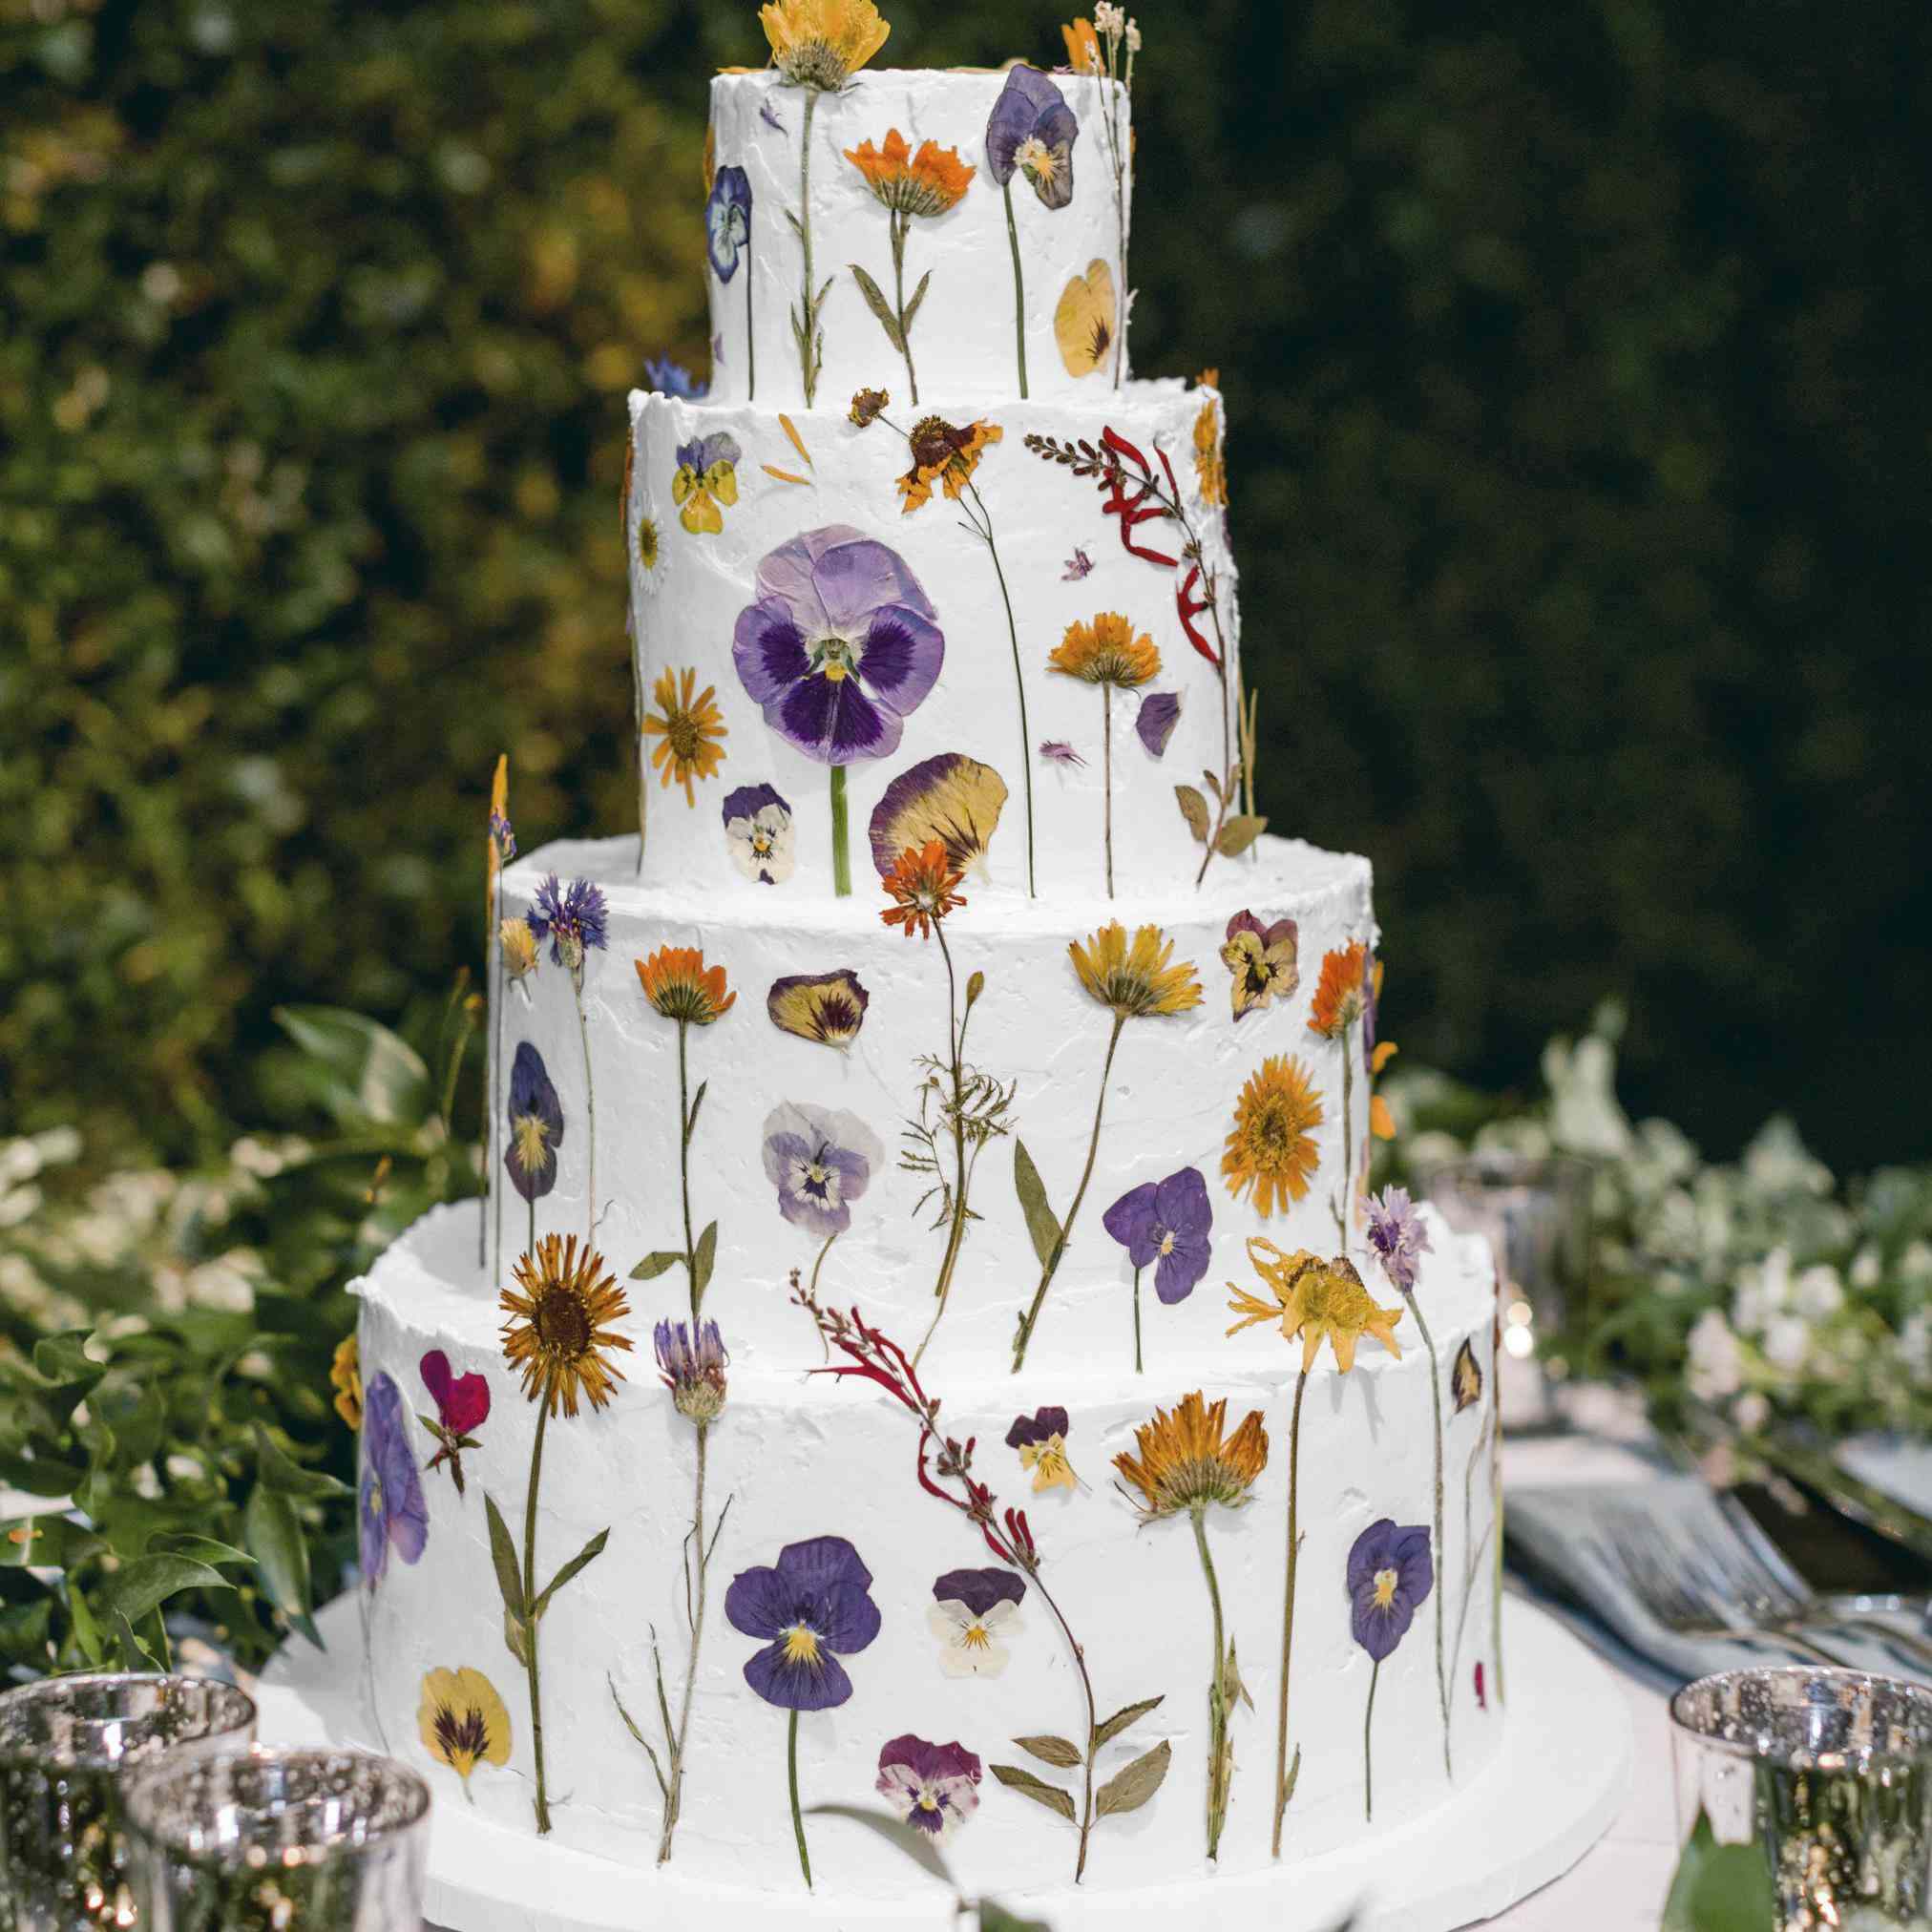 How To Make A Wedding Cake.10 Ways To Decorate A White Wedding Cake So It S Anything But Boring